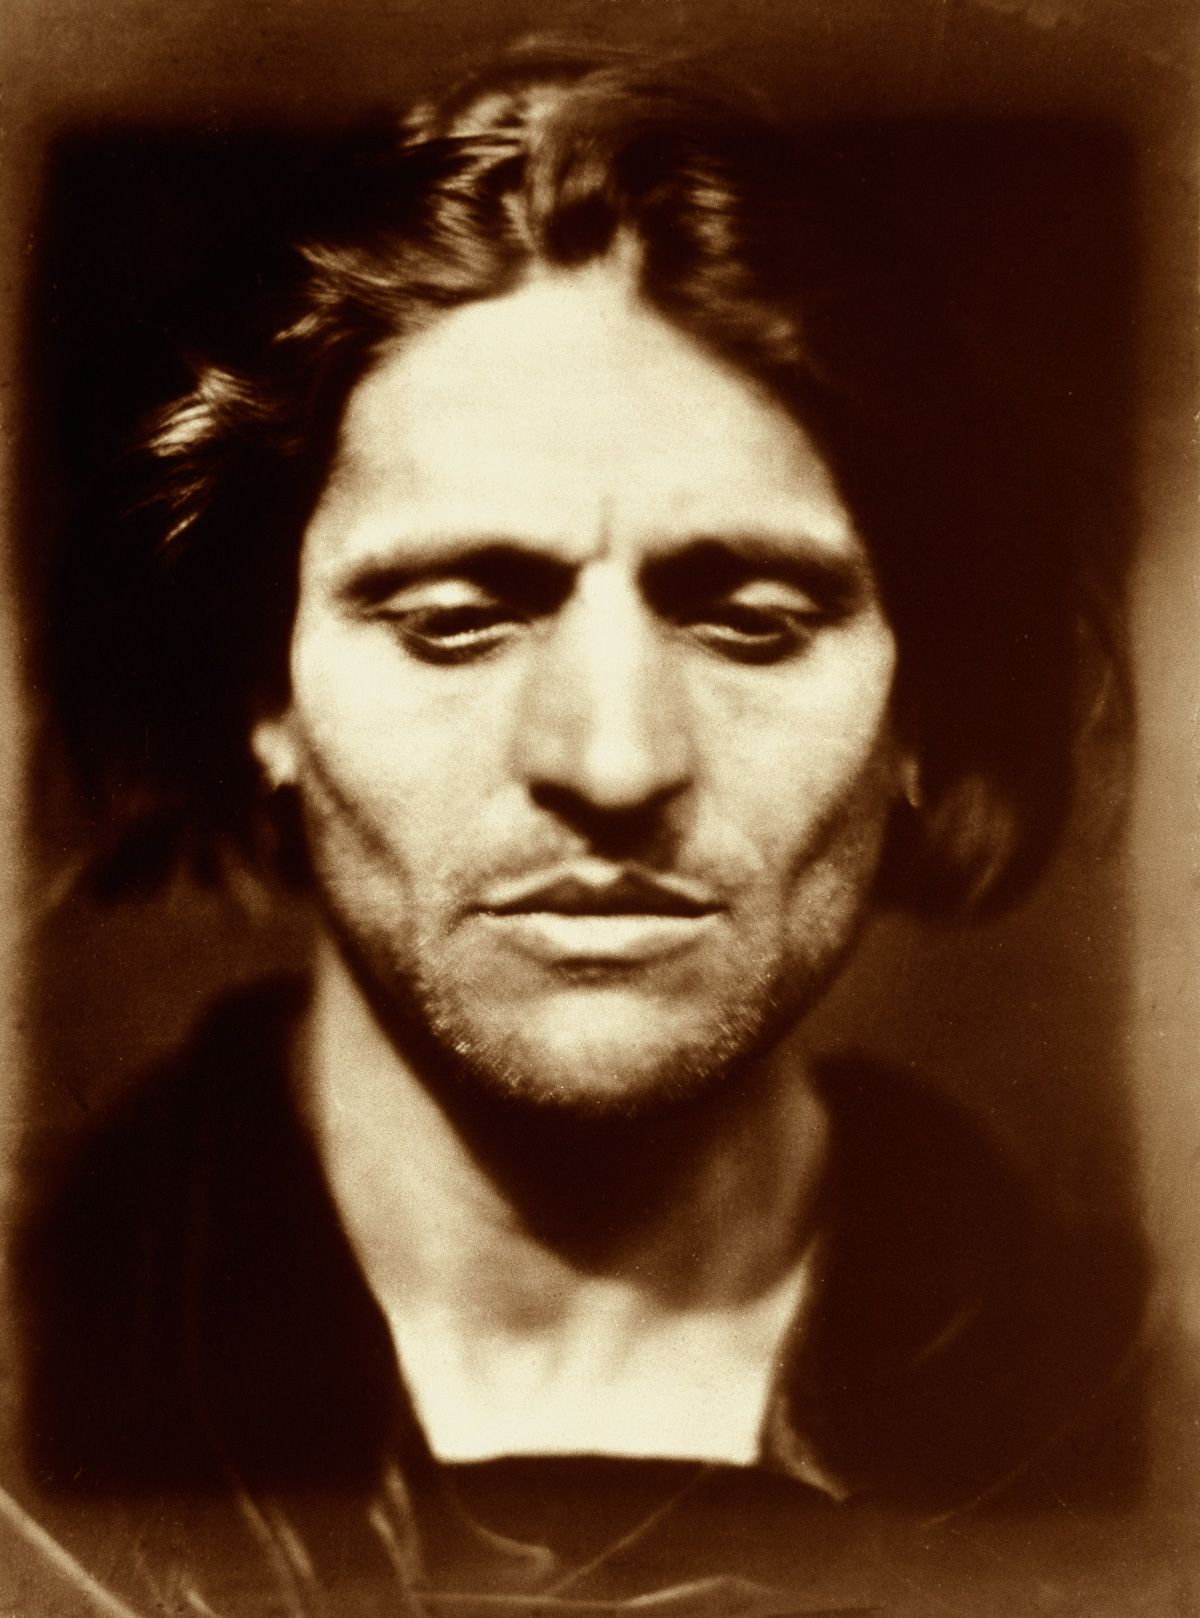 Julia Margaret Cameron portraits 1867 A portrait of an Italian man, possibly an artist's model called Alessandro Colorossi. This was Cameron's only photo of a professional model.